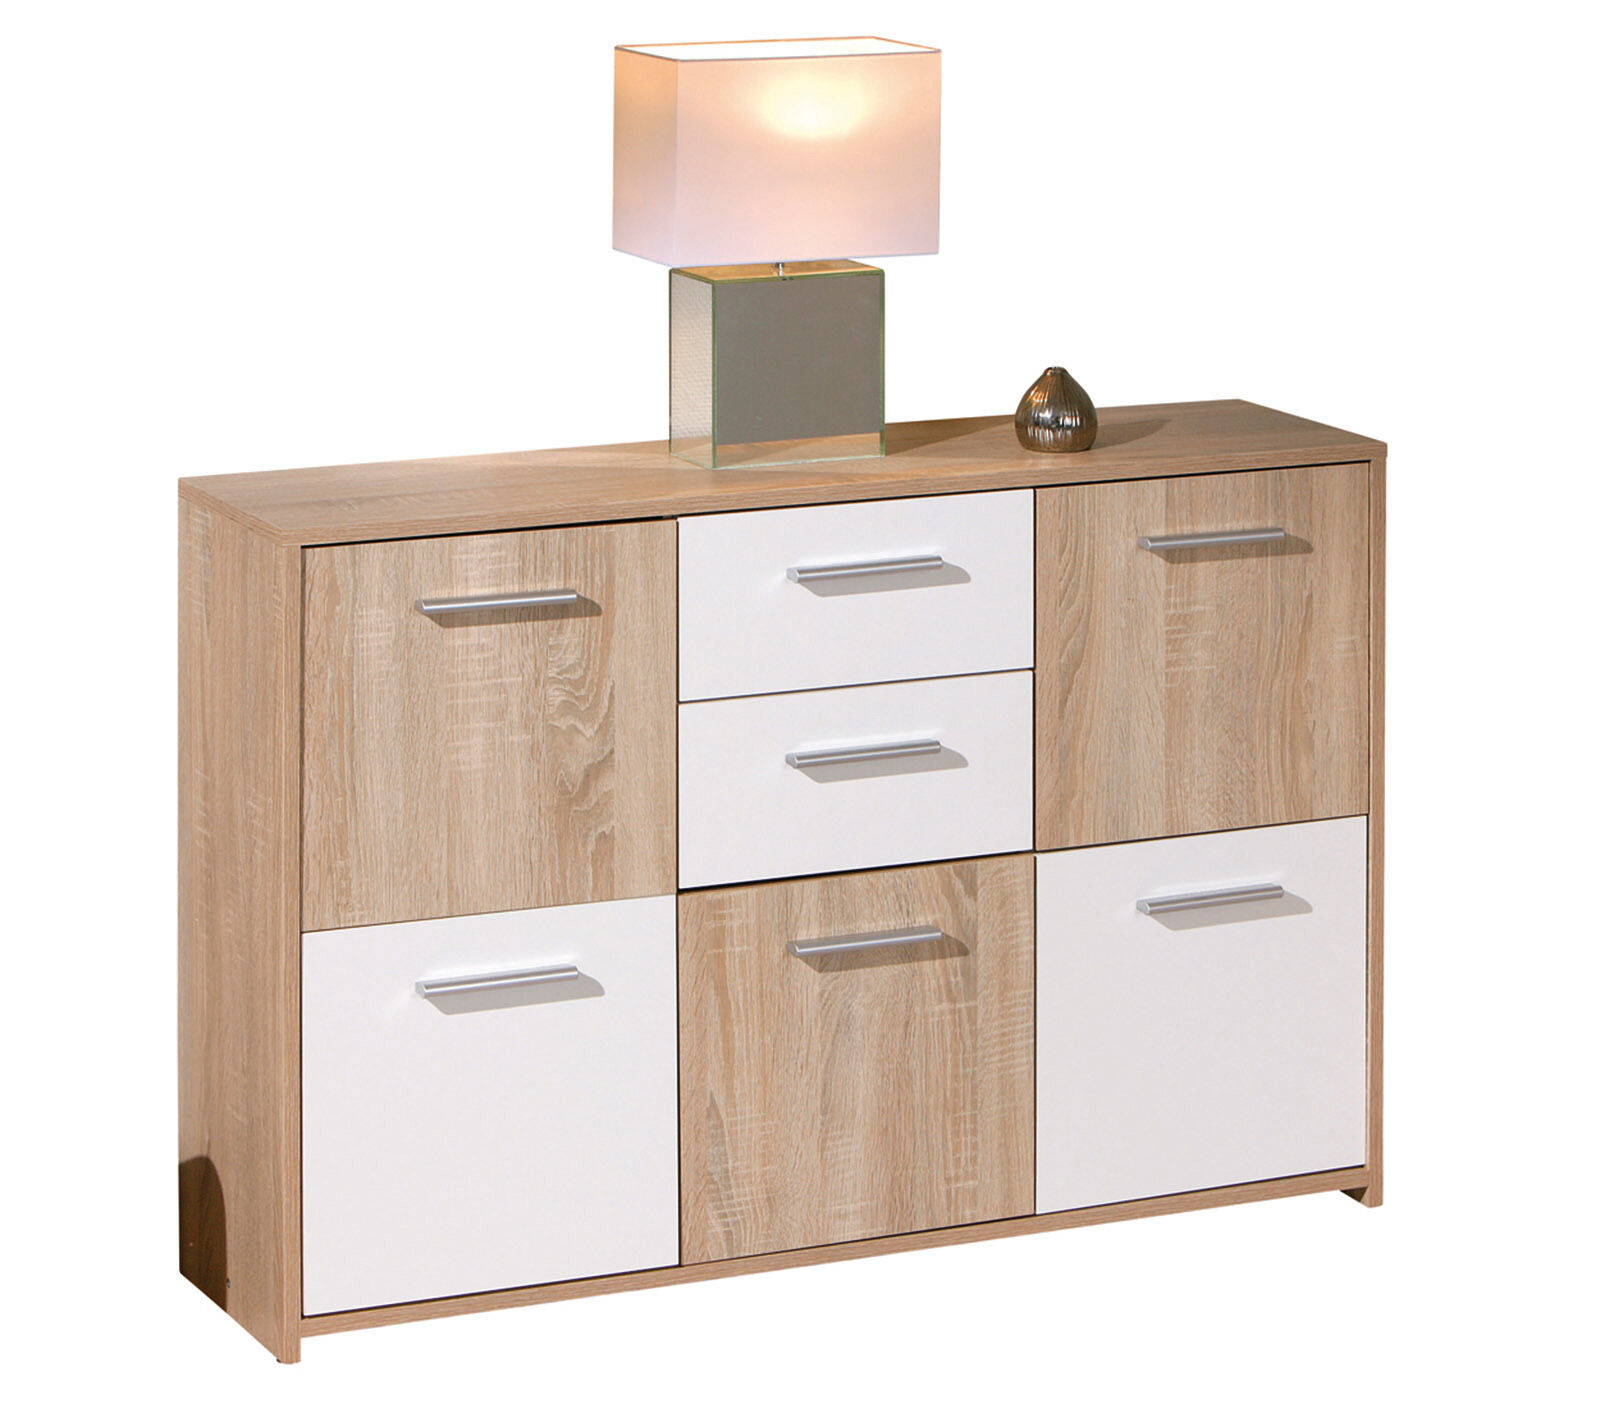 Commode buffet bahut meuble de rangement bureau cuisine for Meuble buffet salon